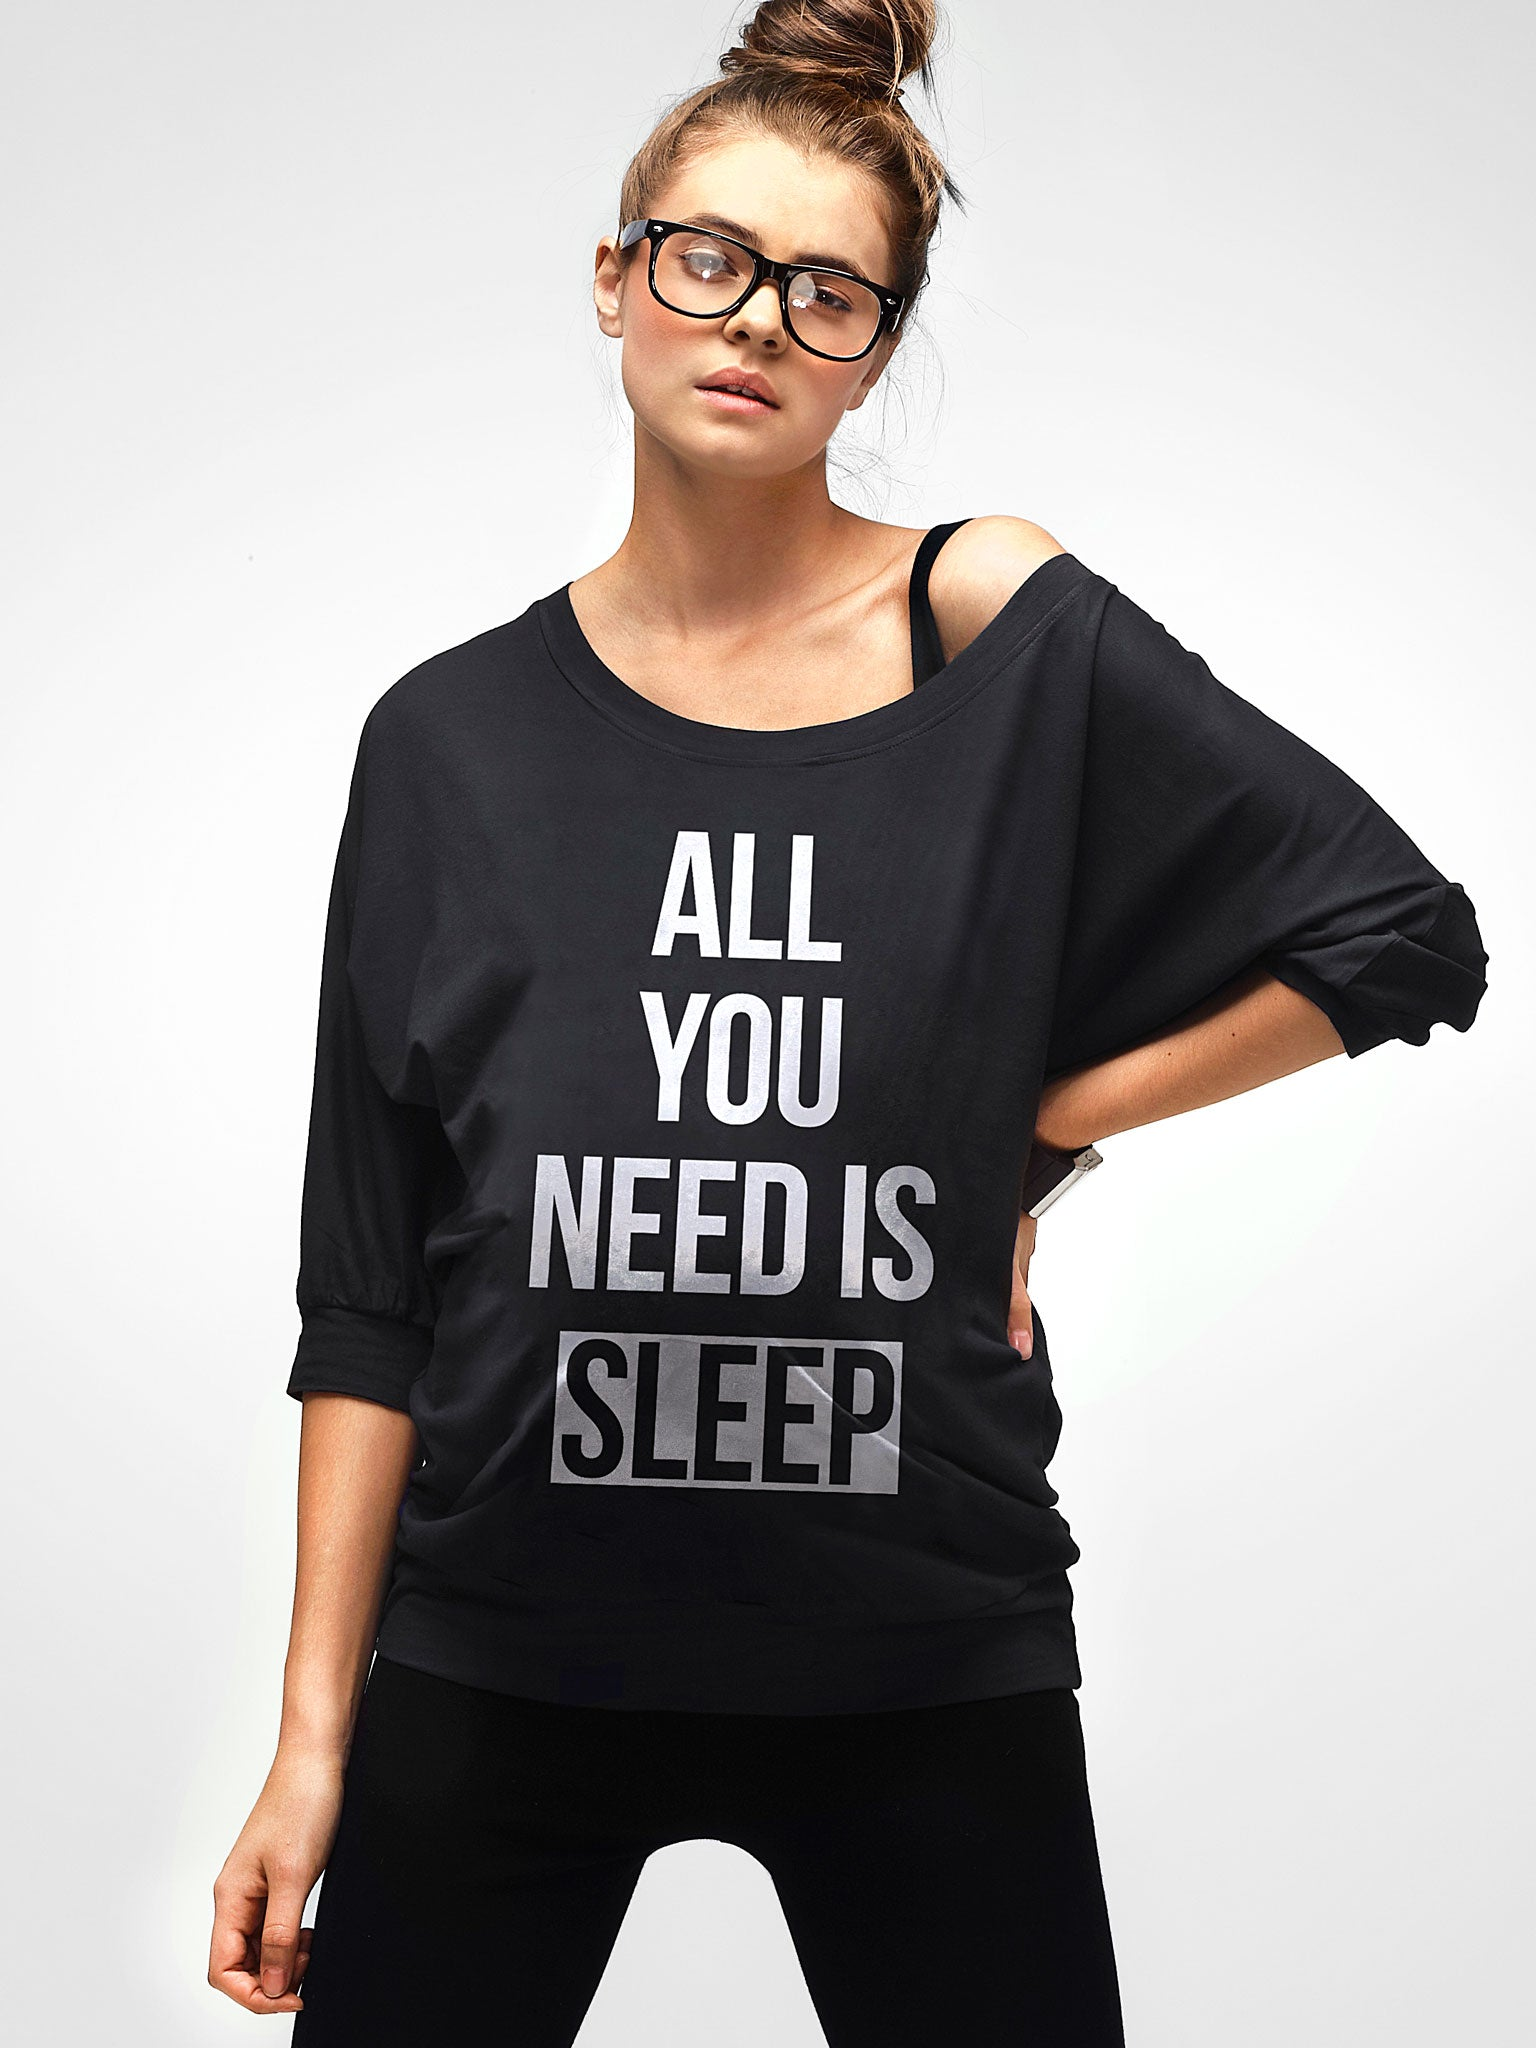 All you need is sleep Maternity Top